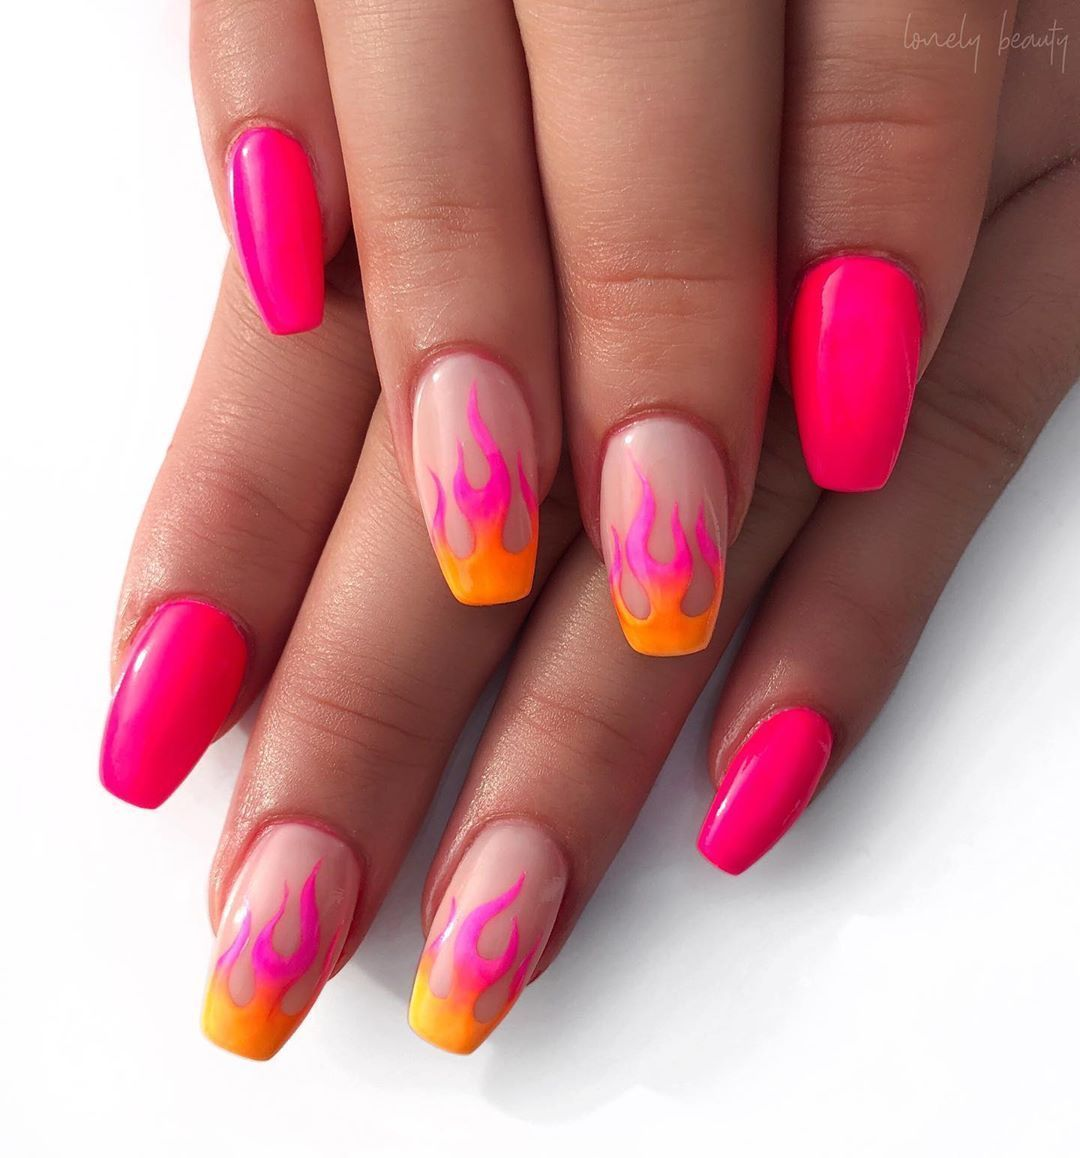 Pin By Xiogudibusiness On Spring In 2020 Neon Nail Art Neon